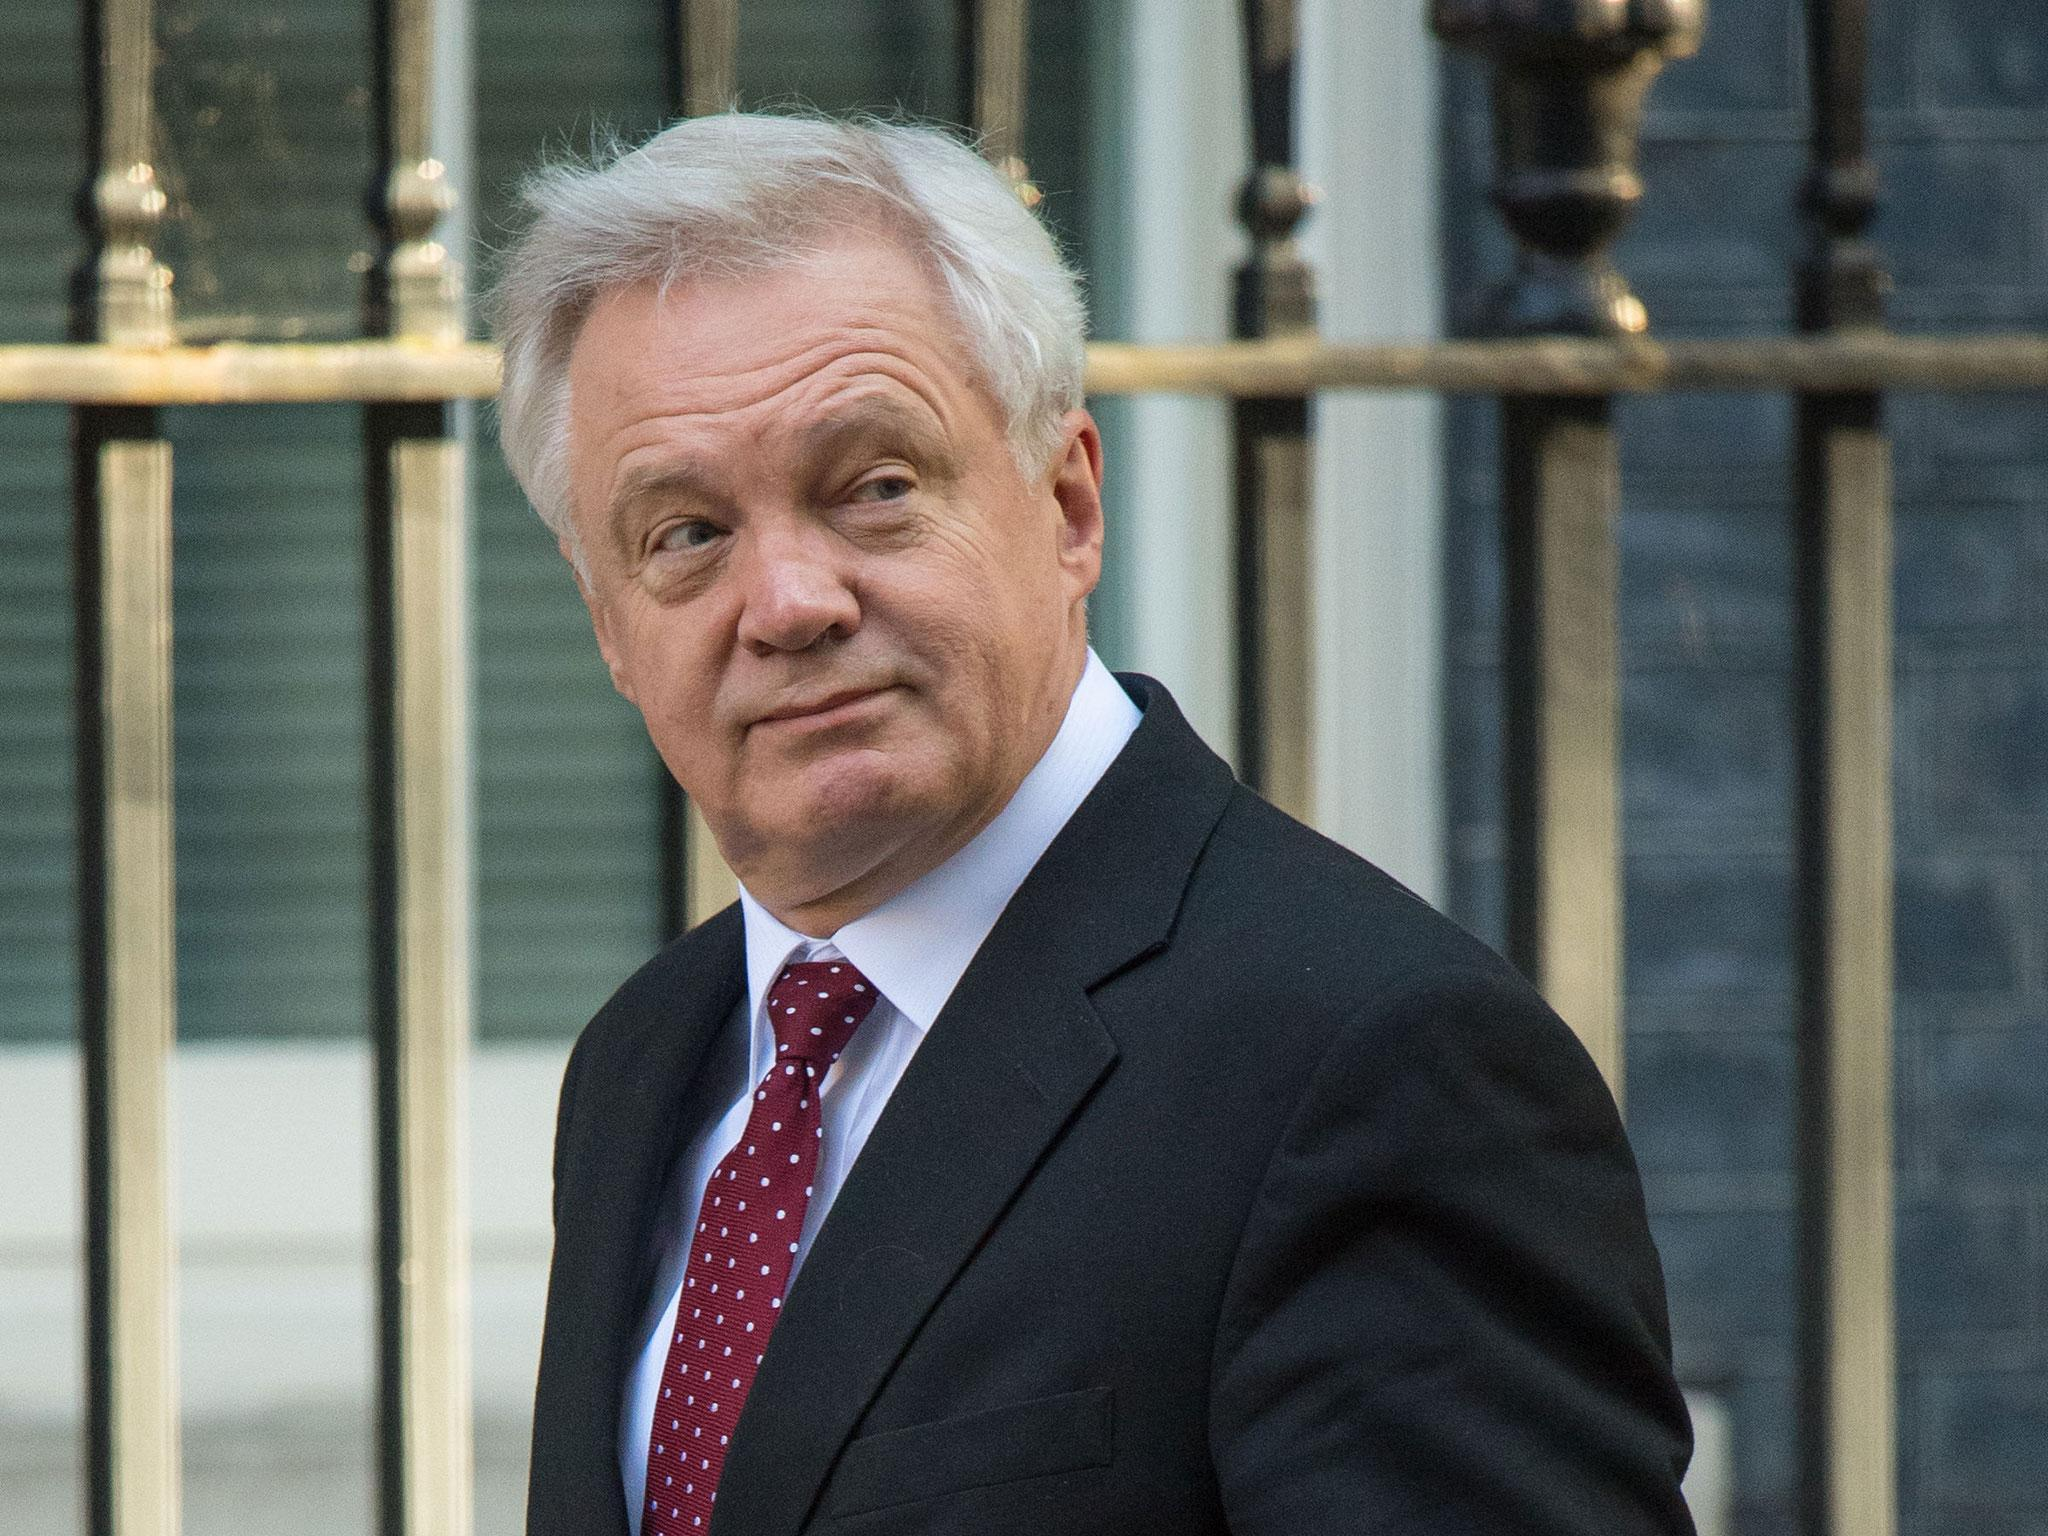 David Davis calls for Tory U-turn on tuition fees and cancellation of student debts